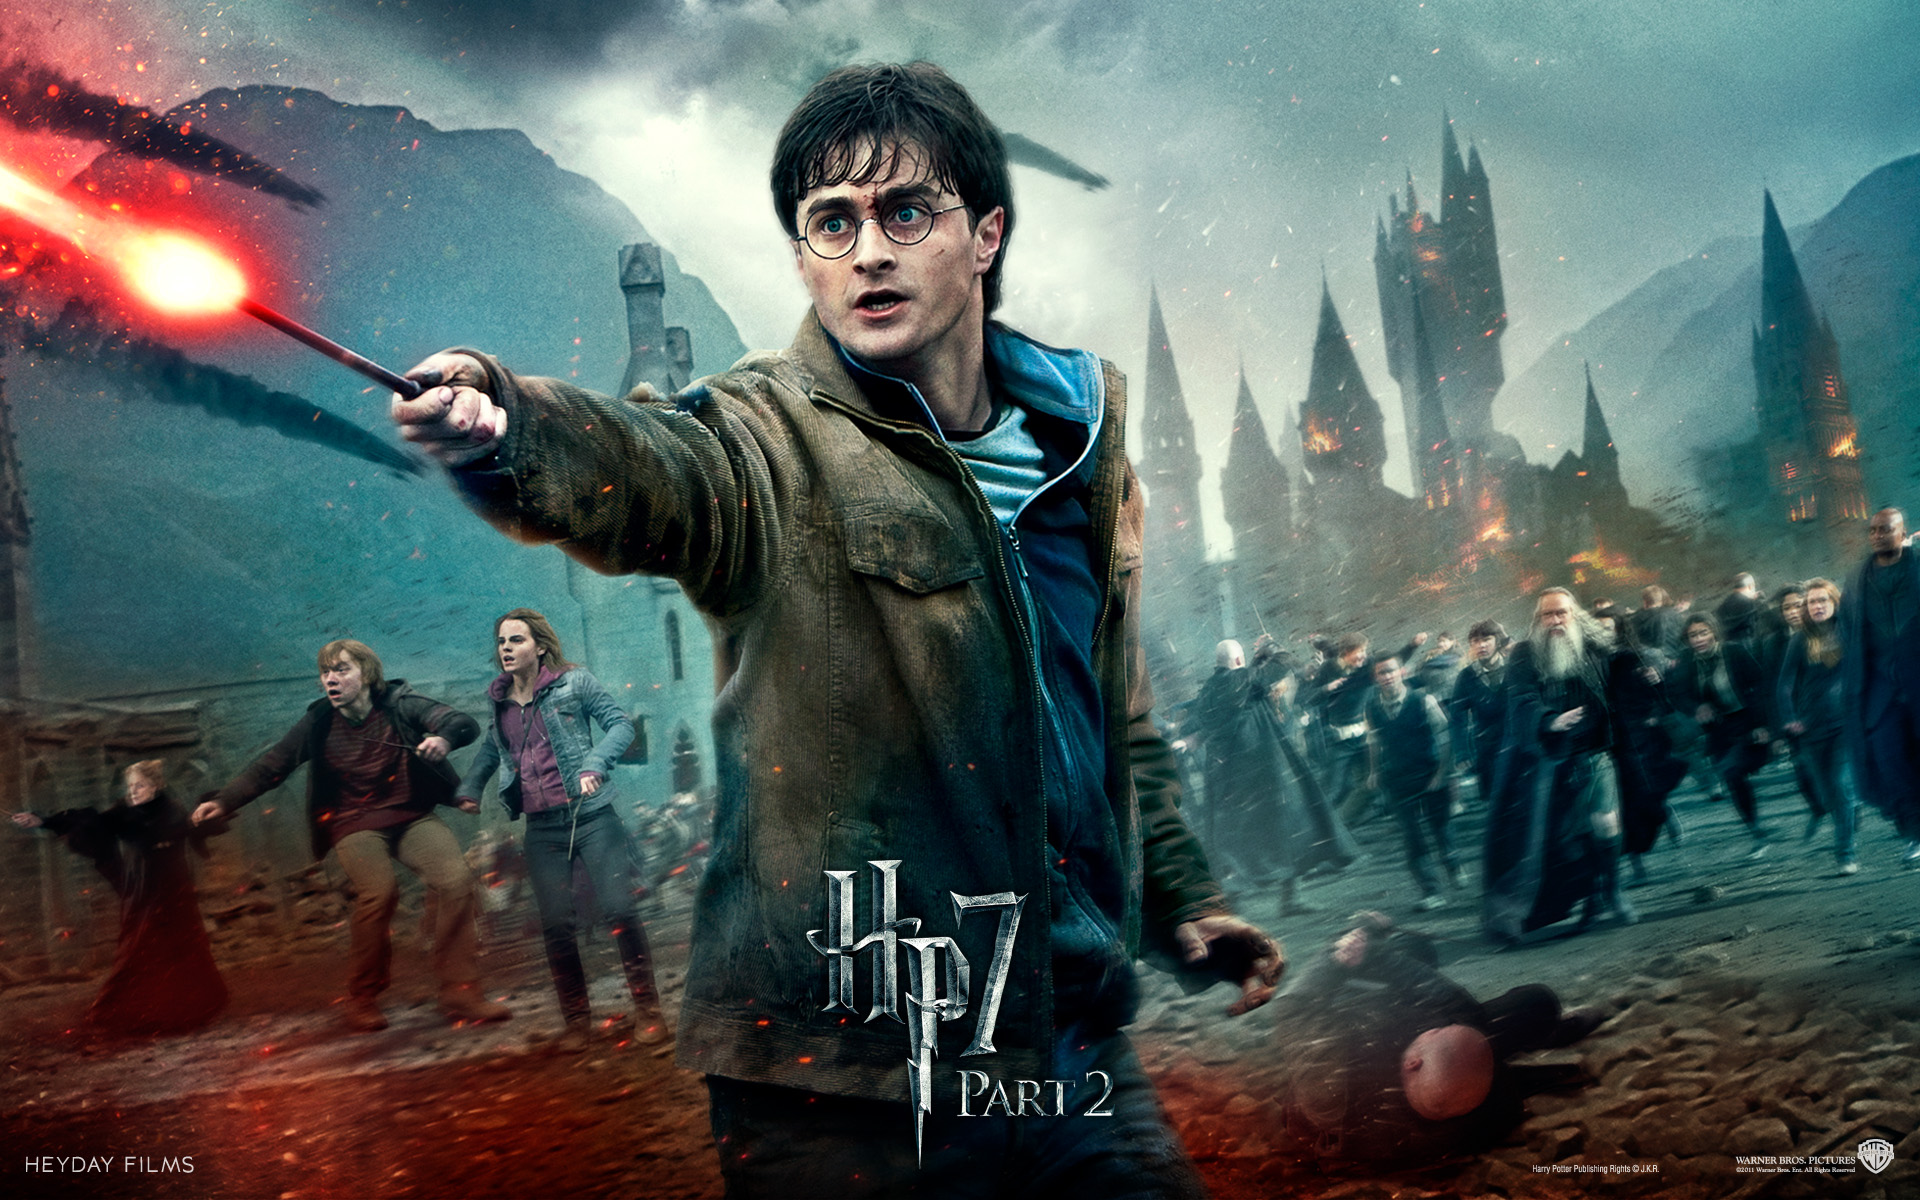 Wallpaper HP7 fight hero Harry Potter - Daniel Radcliffe Harry Potter